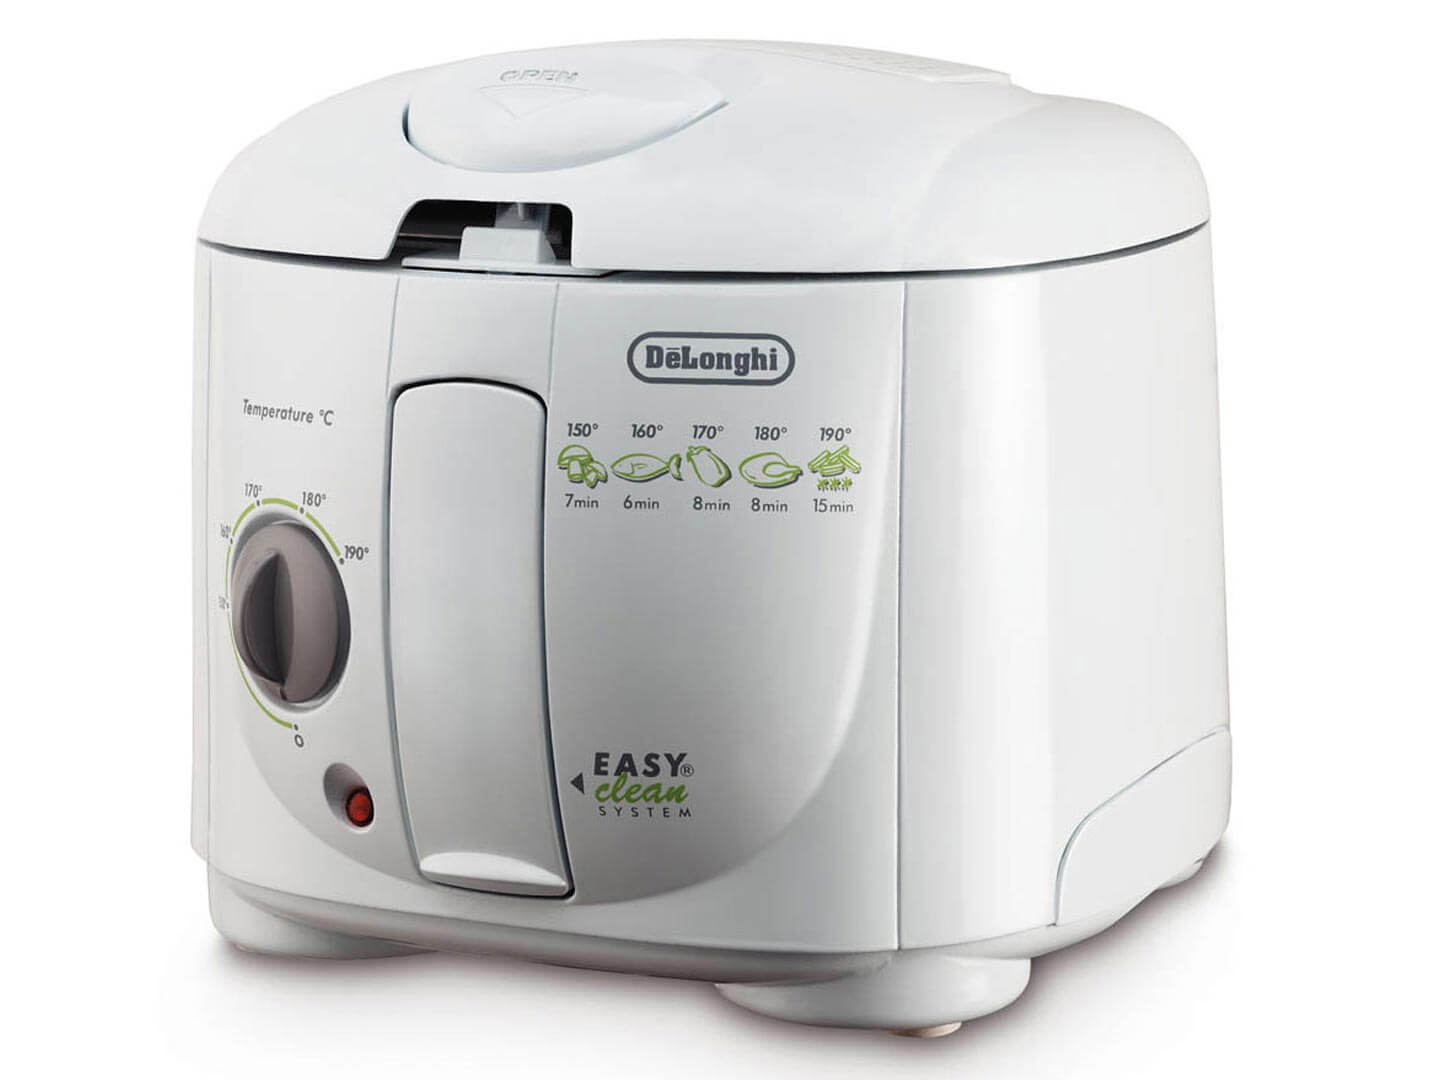 Delonghi F 350 Fritteuse